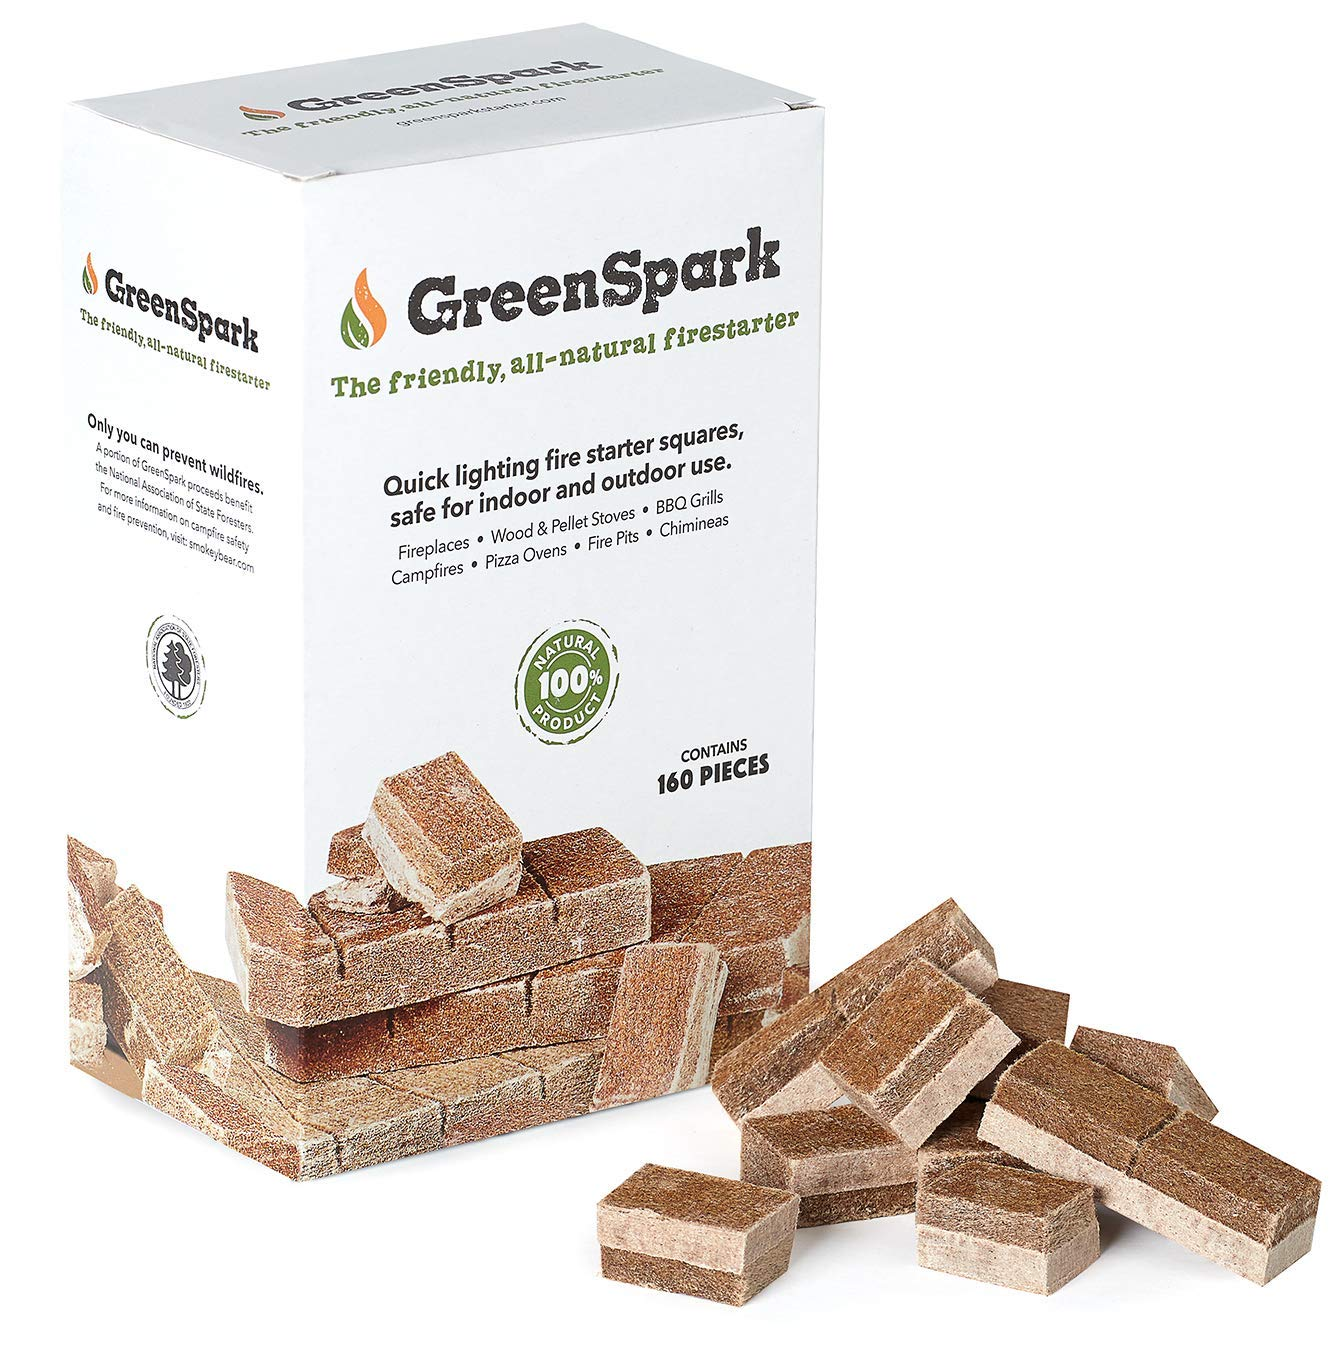 GreenSpark Fire Starter 160 Squares, All-Natural, Fireplace, Campfire, Fire Pit, Grill, BBQ Smoker, Wood & Pellet Stove, Indoor & Outdoor, All-Weather, Super Fast Lighting by GreenSpark